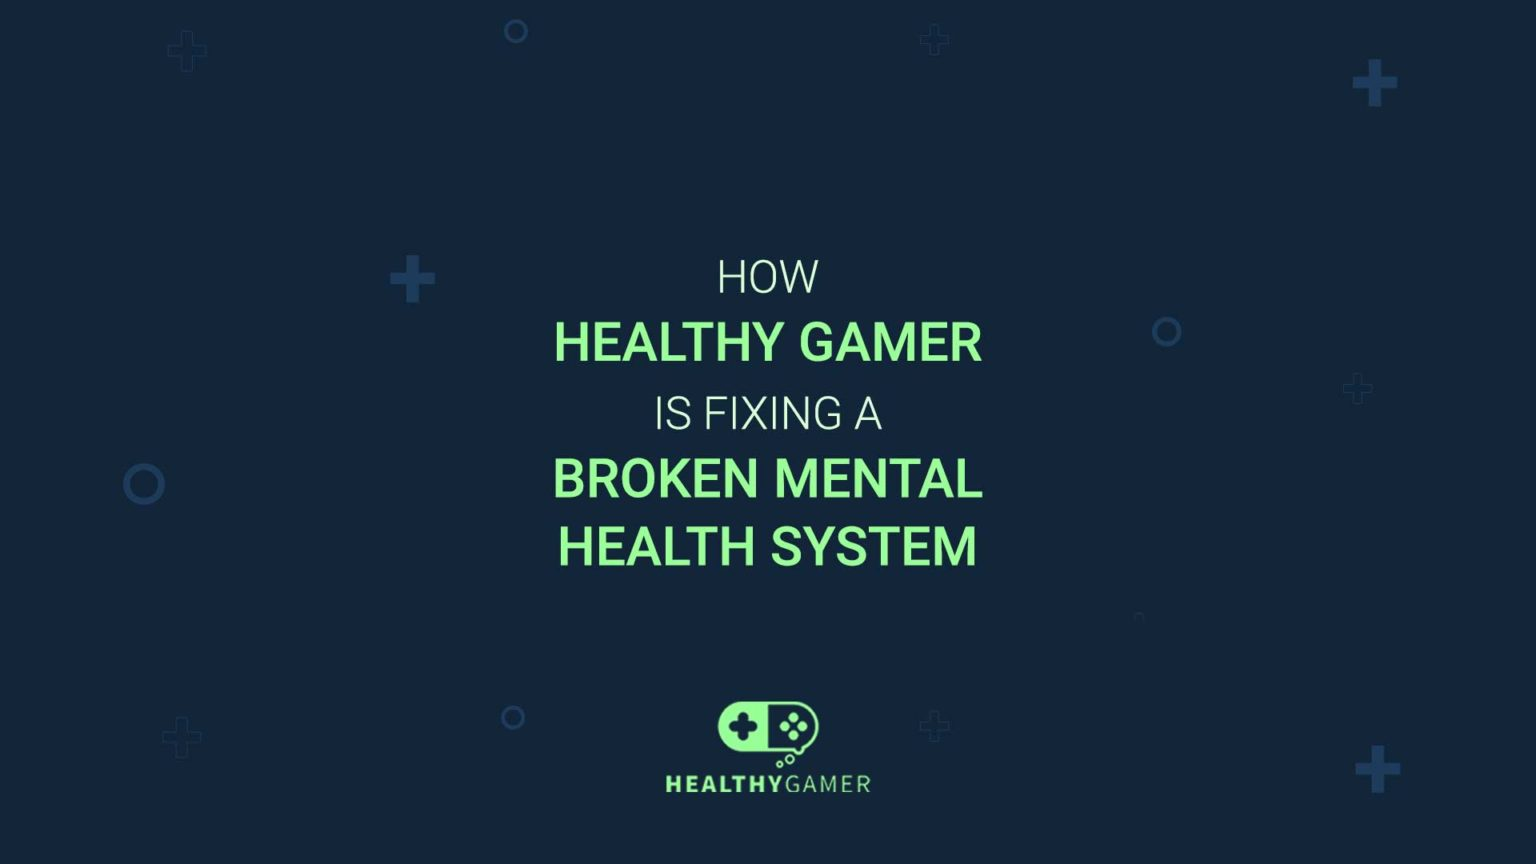 How Healthy Gamer is Fixing a Broken Mental Health System